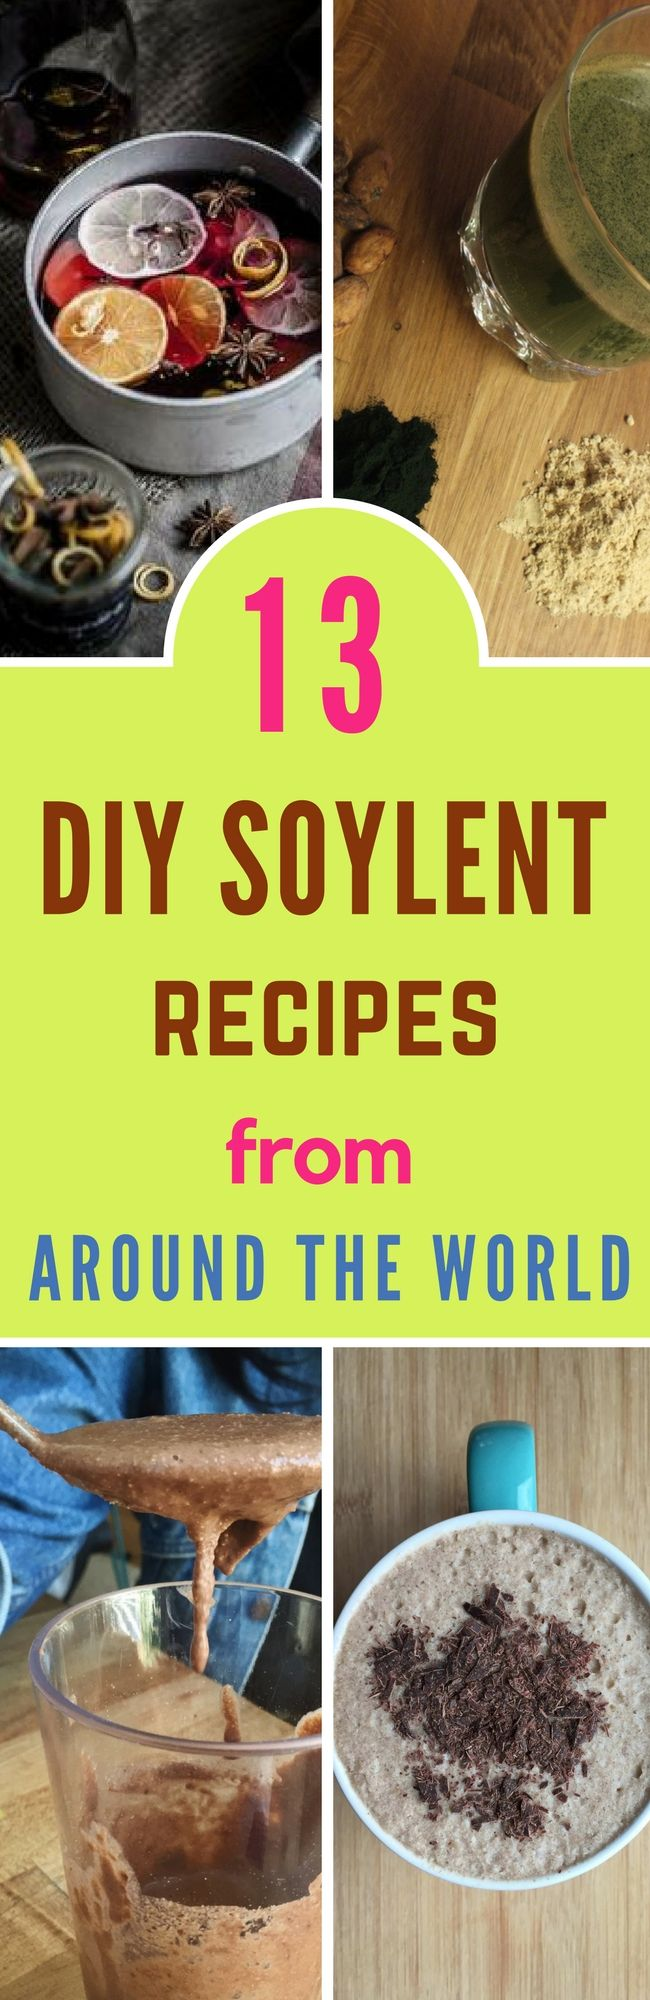 Must try these 13 DIY Soylent Recipes For Fulfilling Your Daily Nutrition  #diysoylent #soylent #foodsubstitute